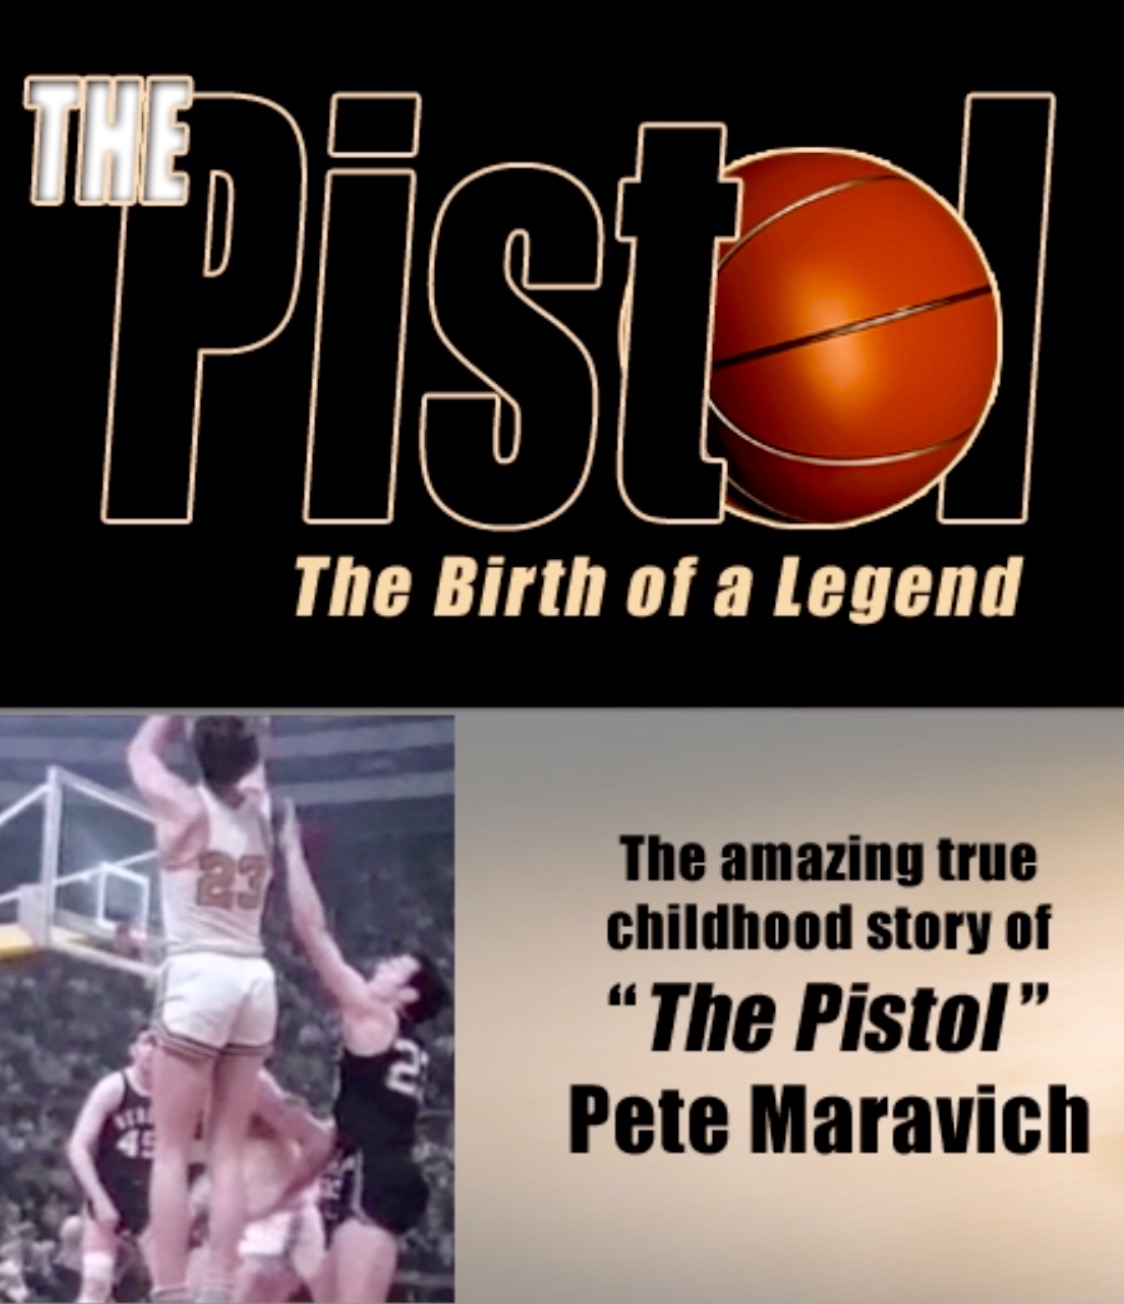 "THE PISTOL MOVIE - THE AMAZING TRUE CHILDHOOD STORY OF ""THE PISTOL"" PETE MARAVICH"